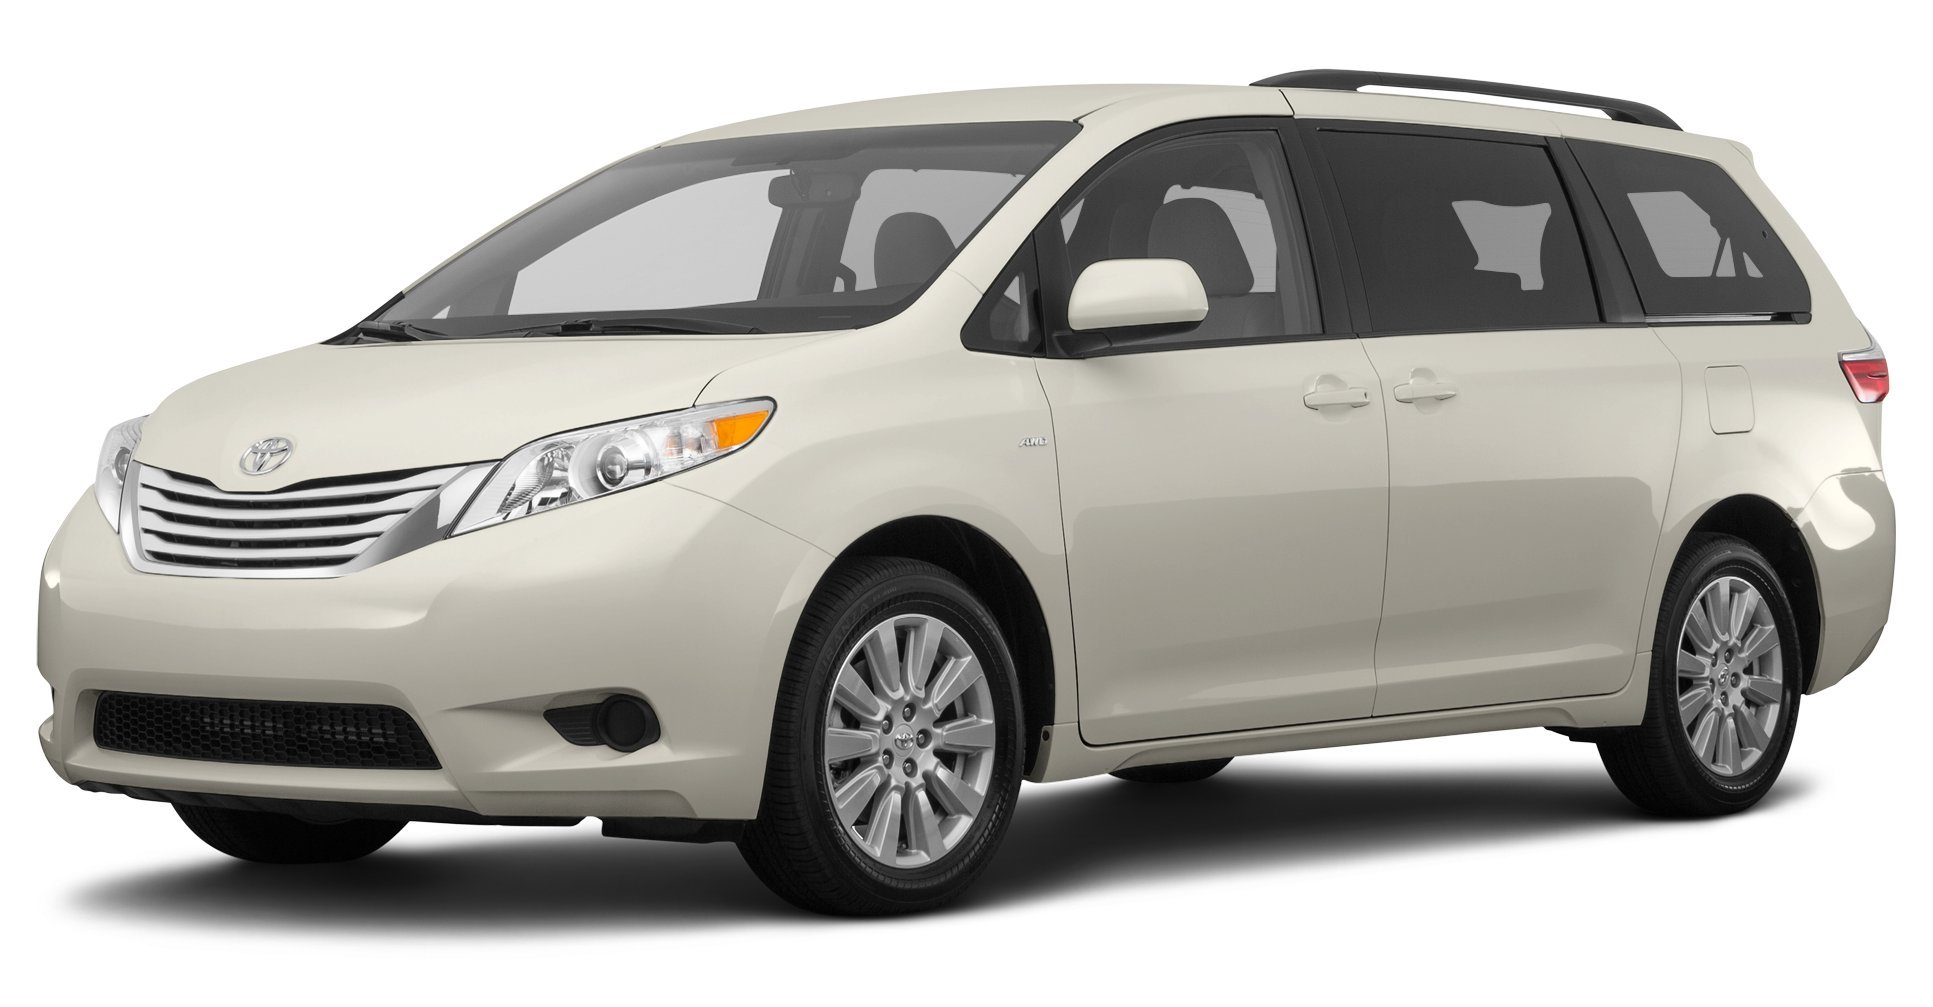 2017 toyota sienna reviews images and specs vehicles. Black Bedroom Furniture Sets. Home Design Ideas